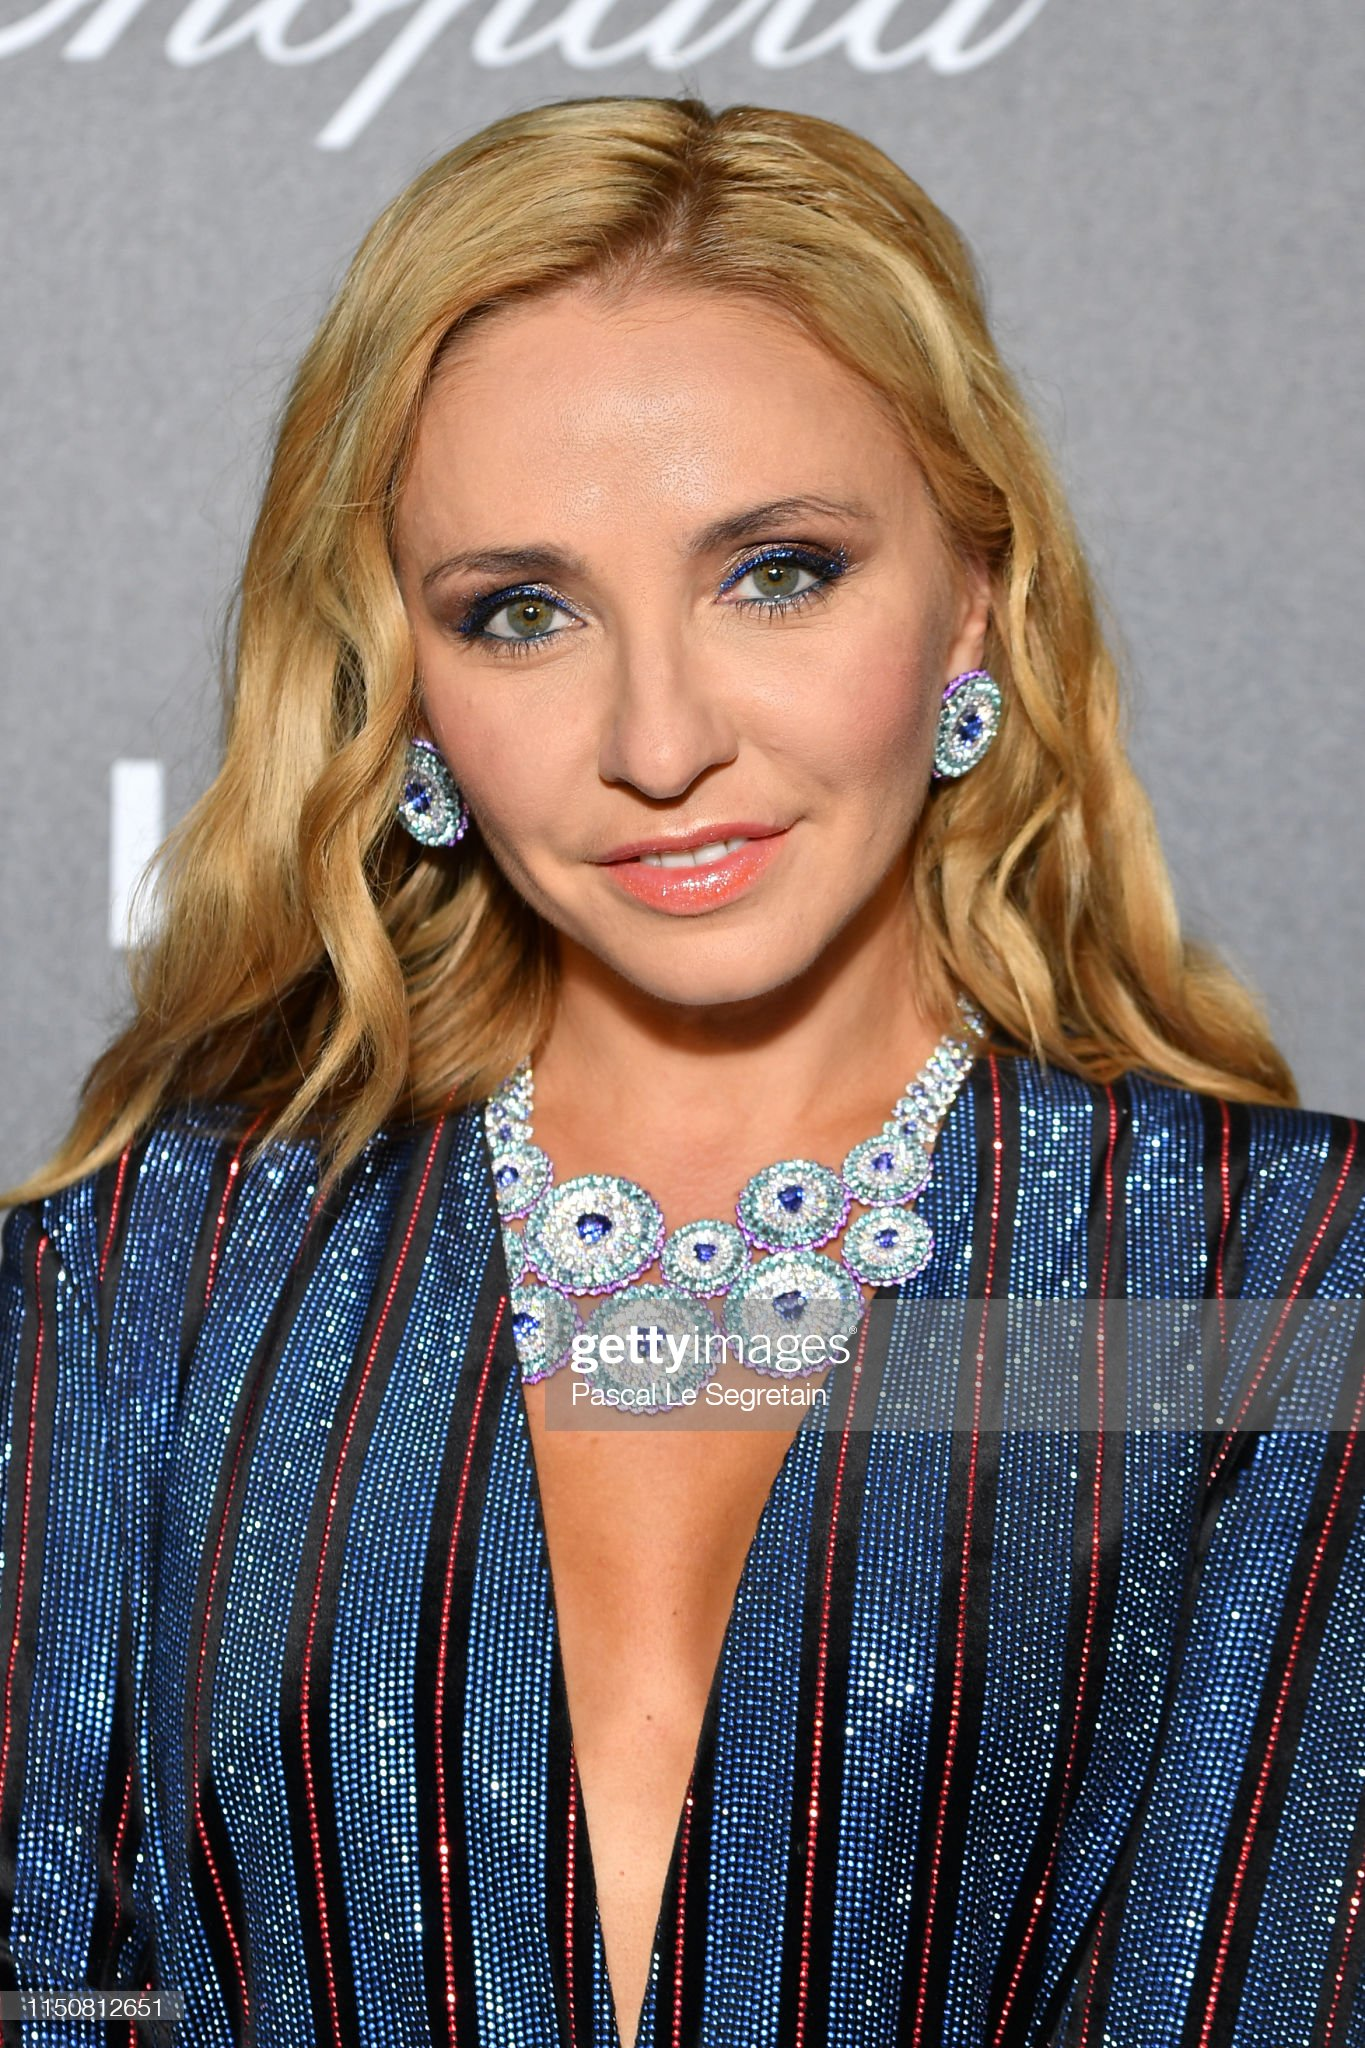 Светская и частная жизнь. 2018, 2019 год - Страница 13 Tatiana-navka-attends-chopard-and-annabels-the-gentlemans-evening-at-picture-id1150812651?s=2048x2048